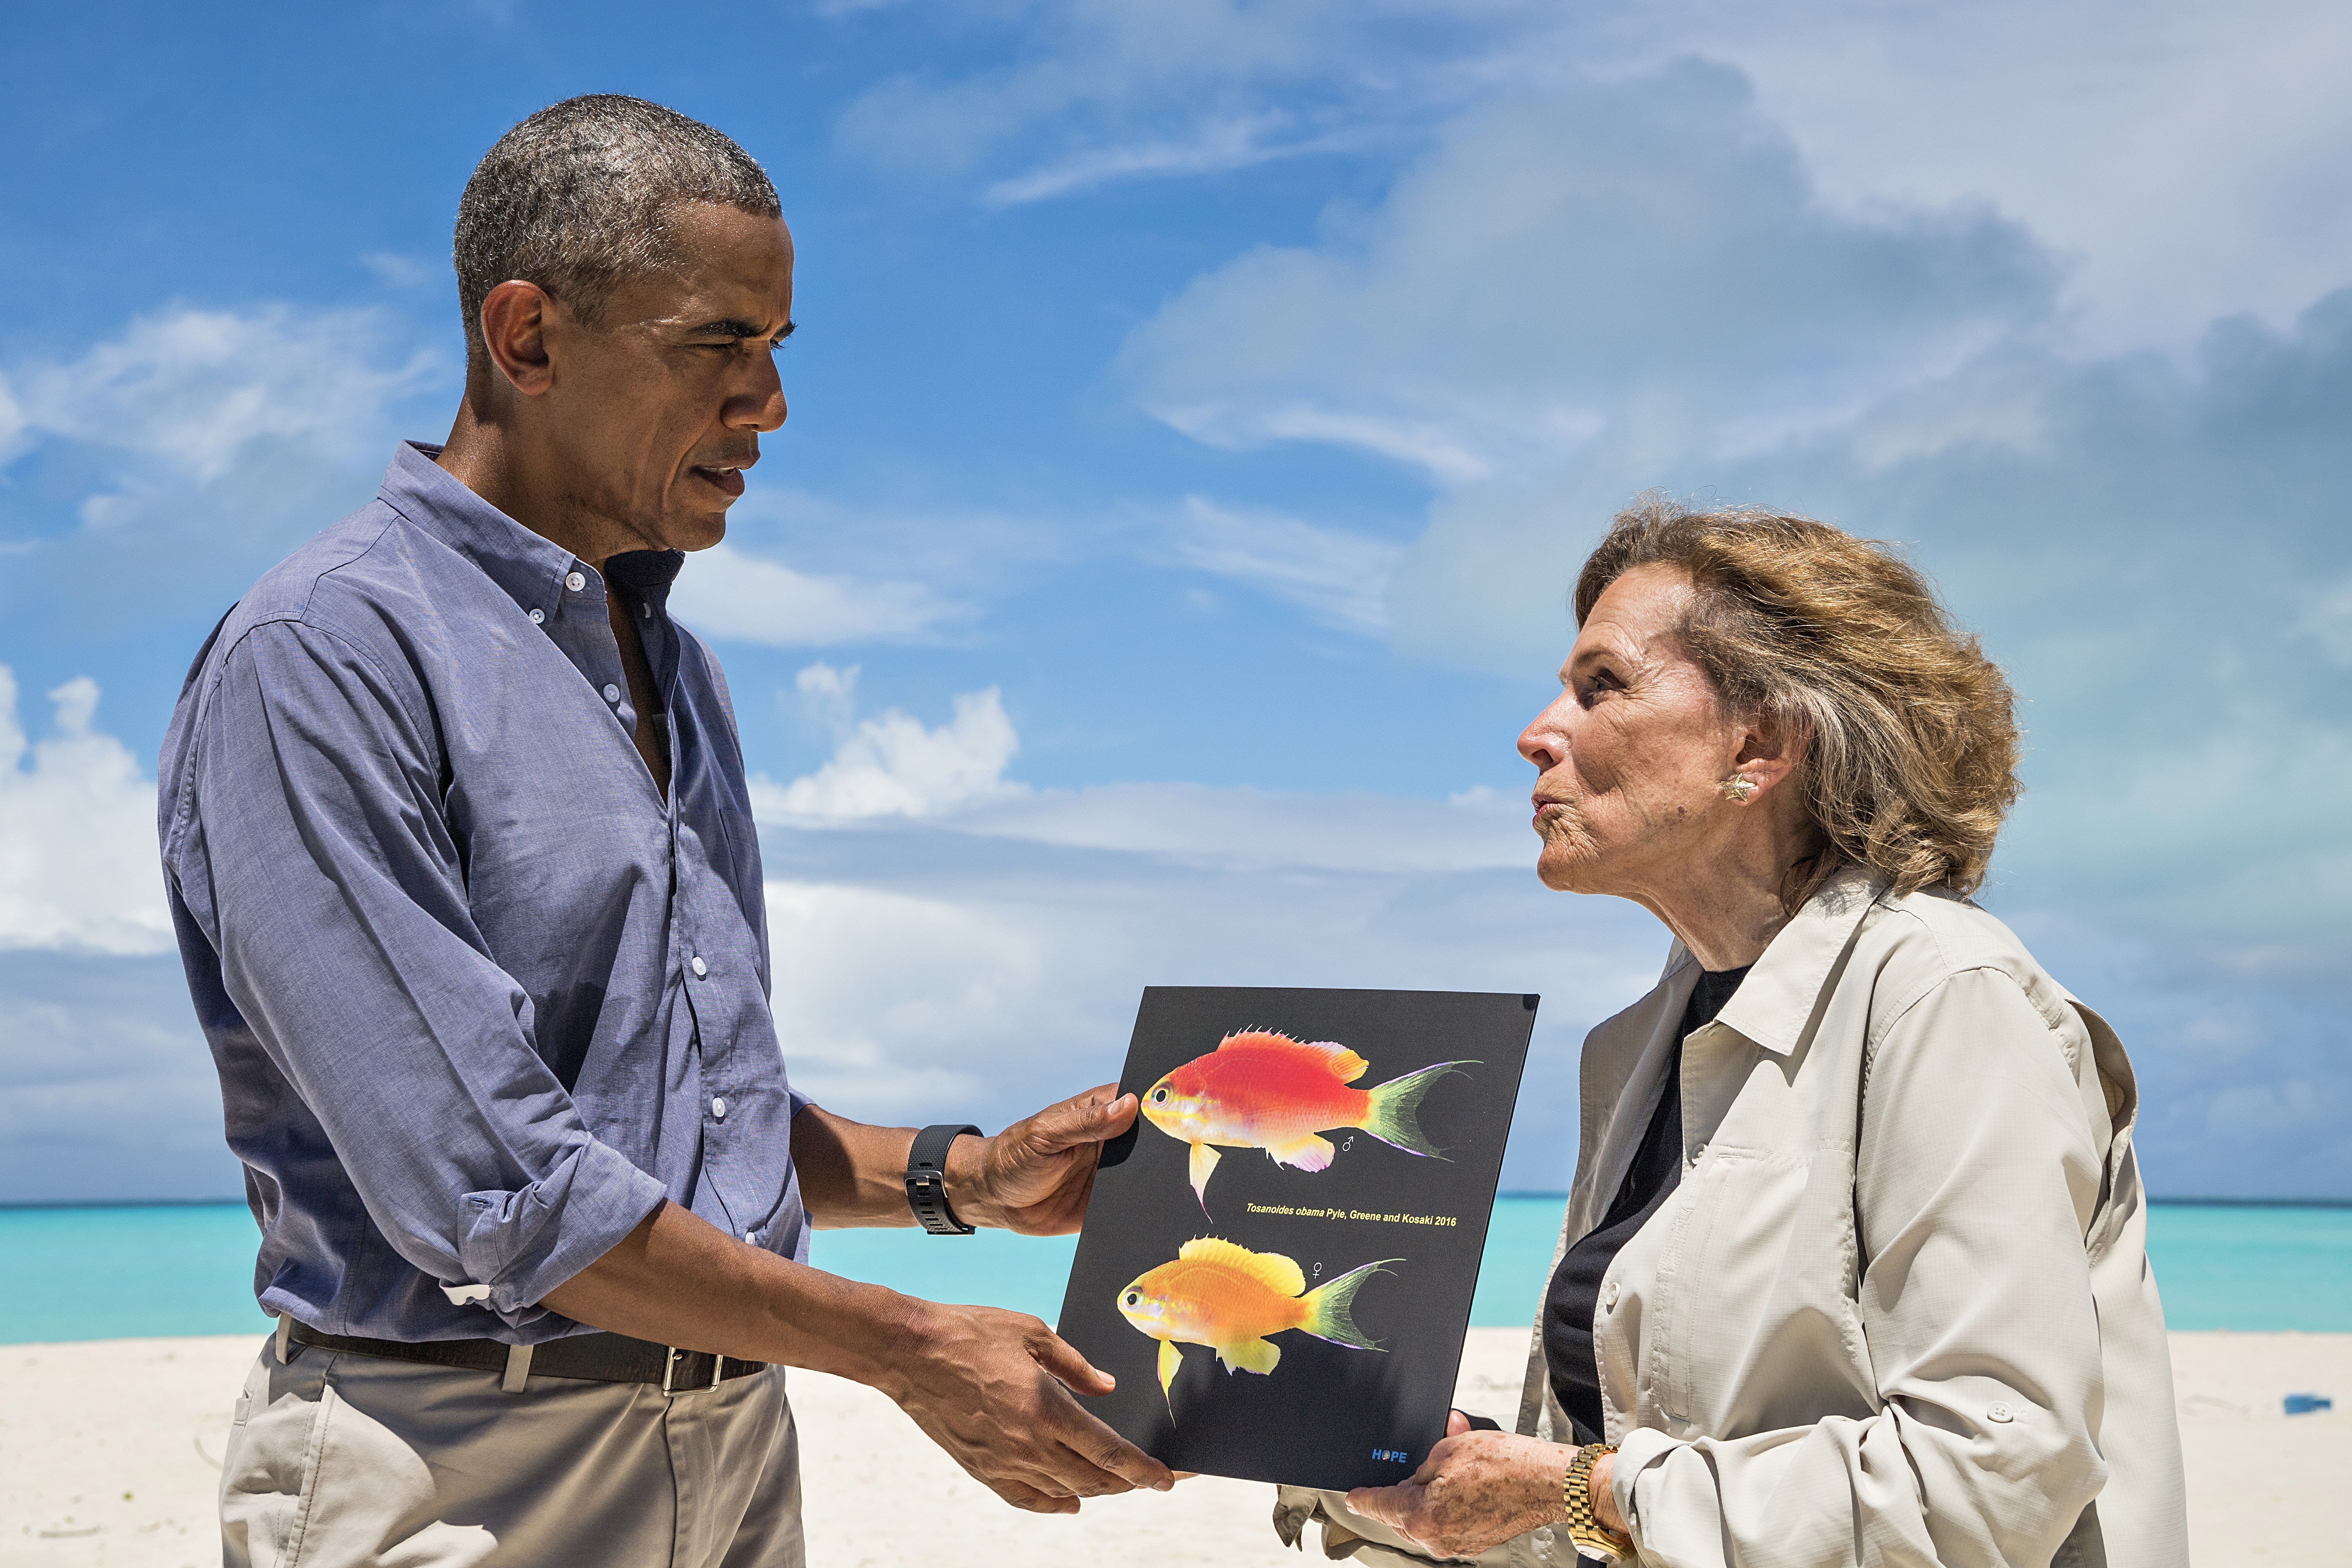 Newly discovered coral-reef fish named after Obama